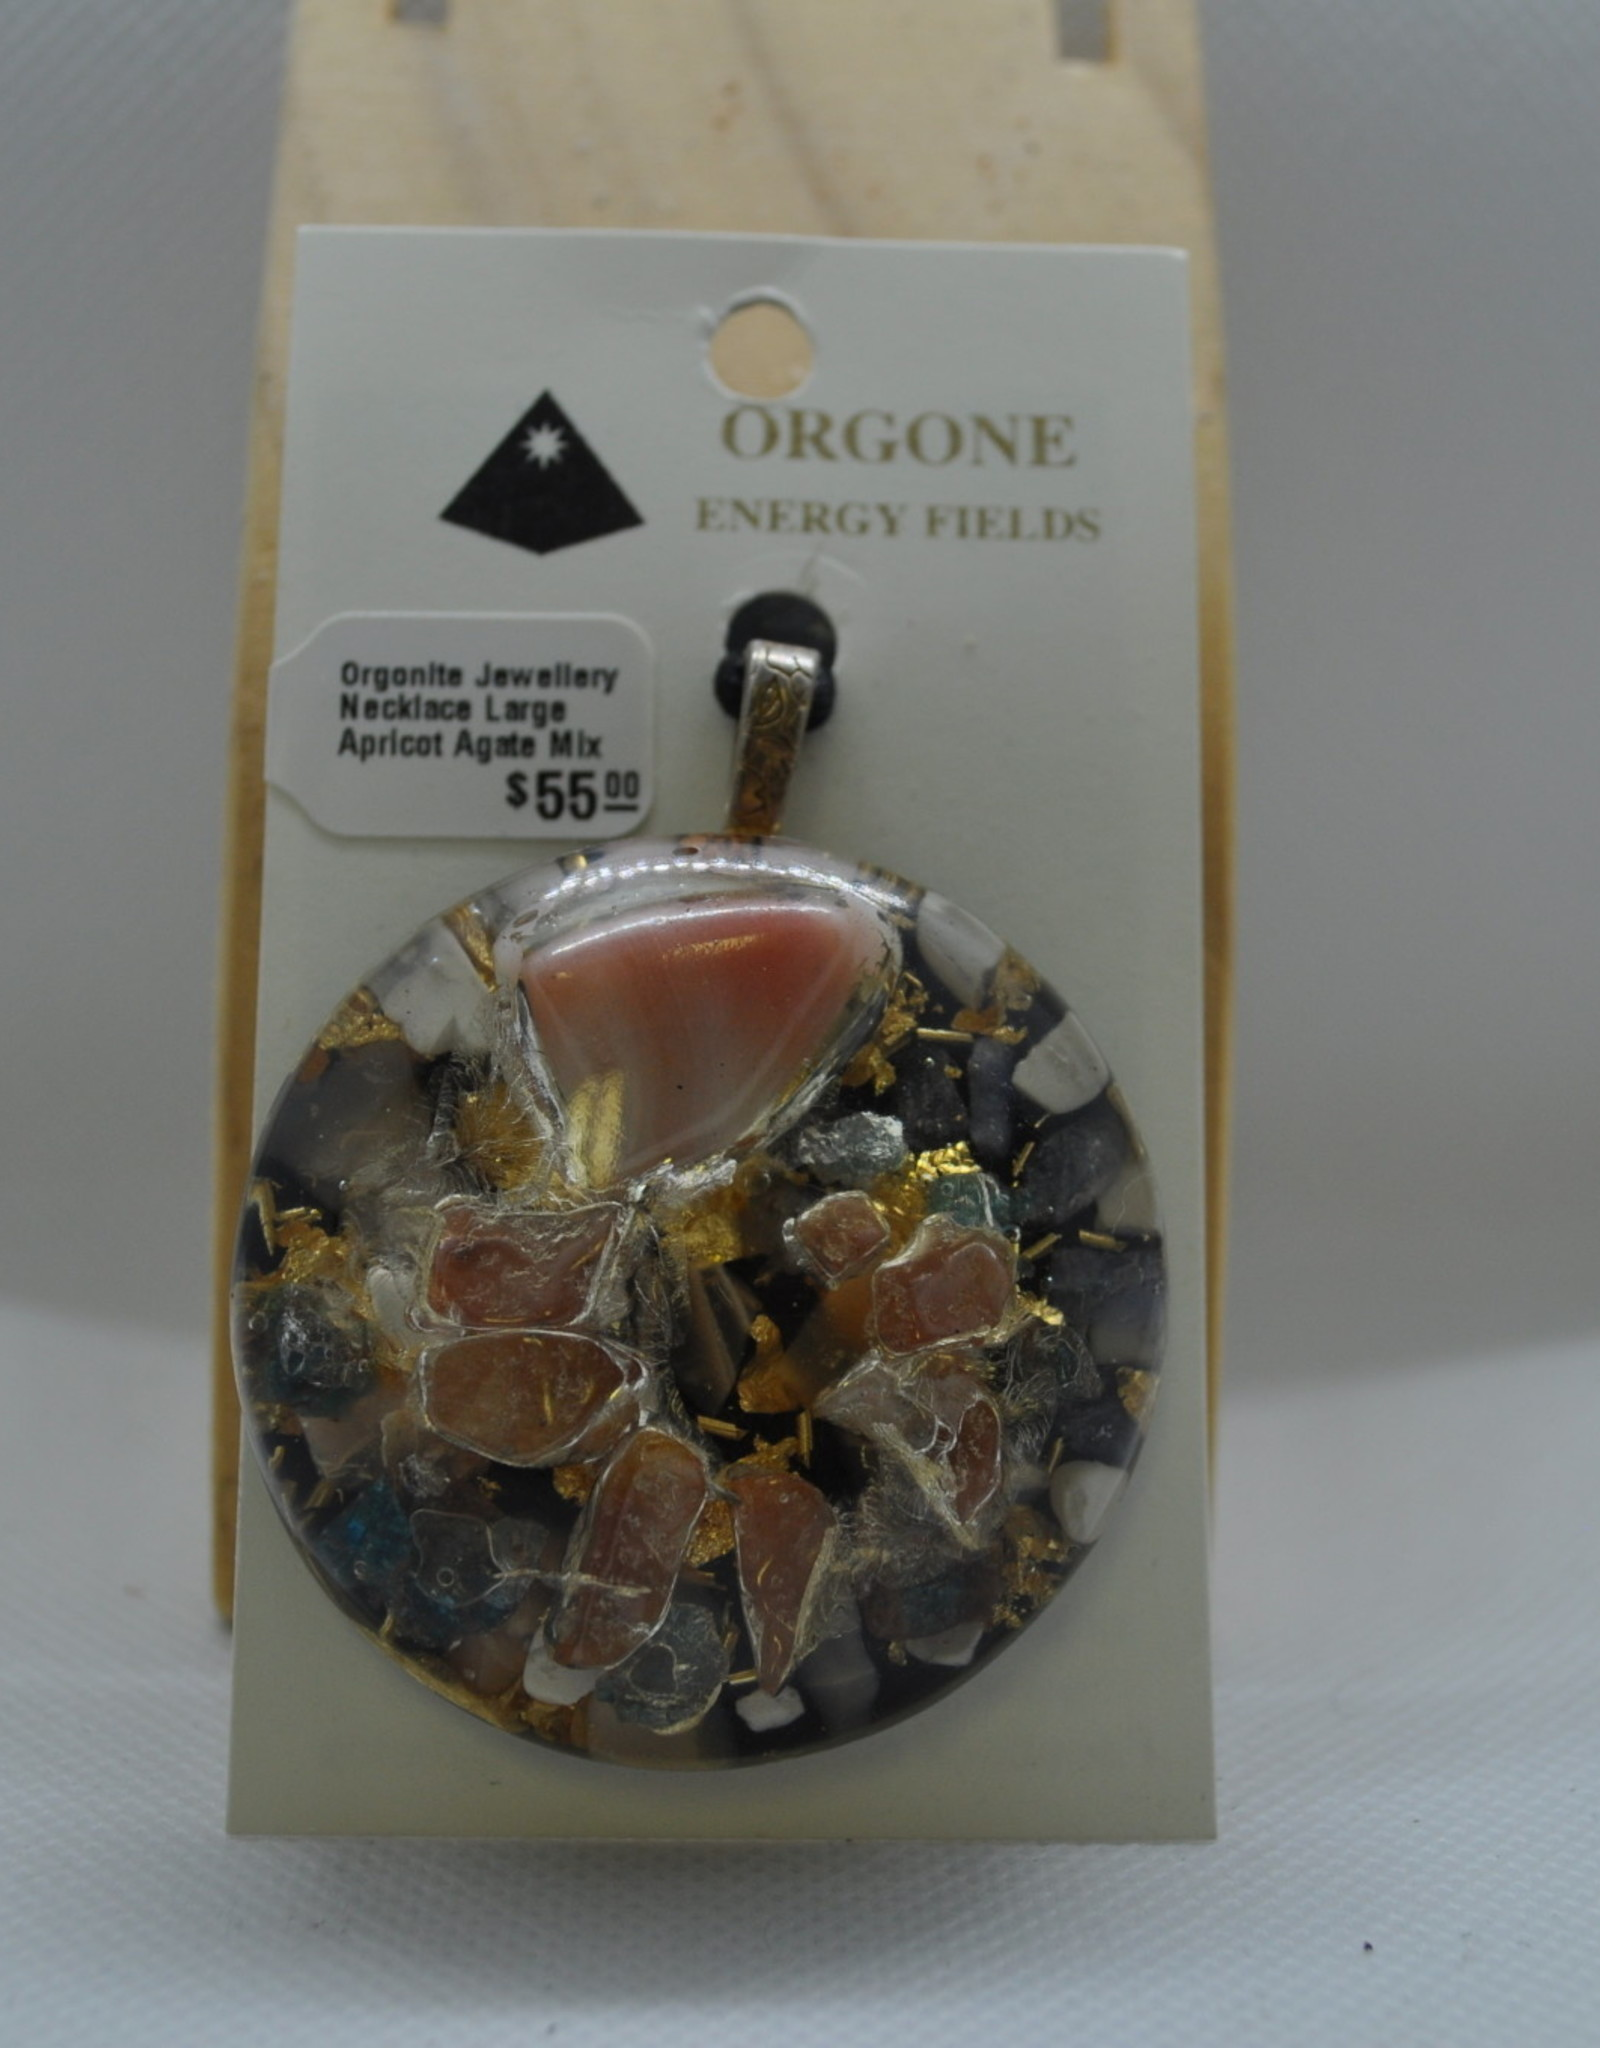 Orgone Energy Fields Large Apricot Agate Mix